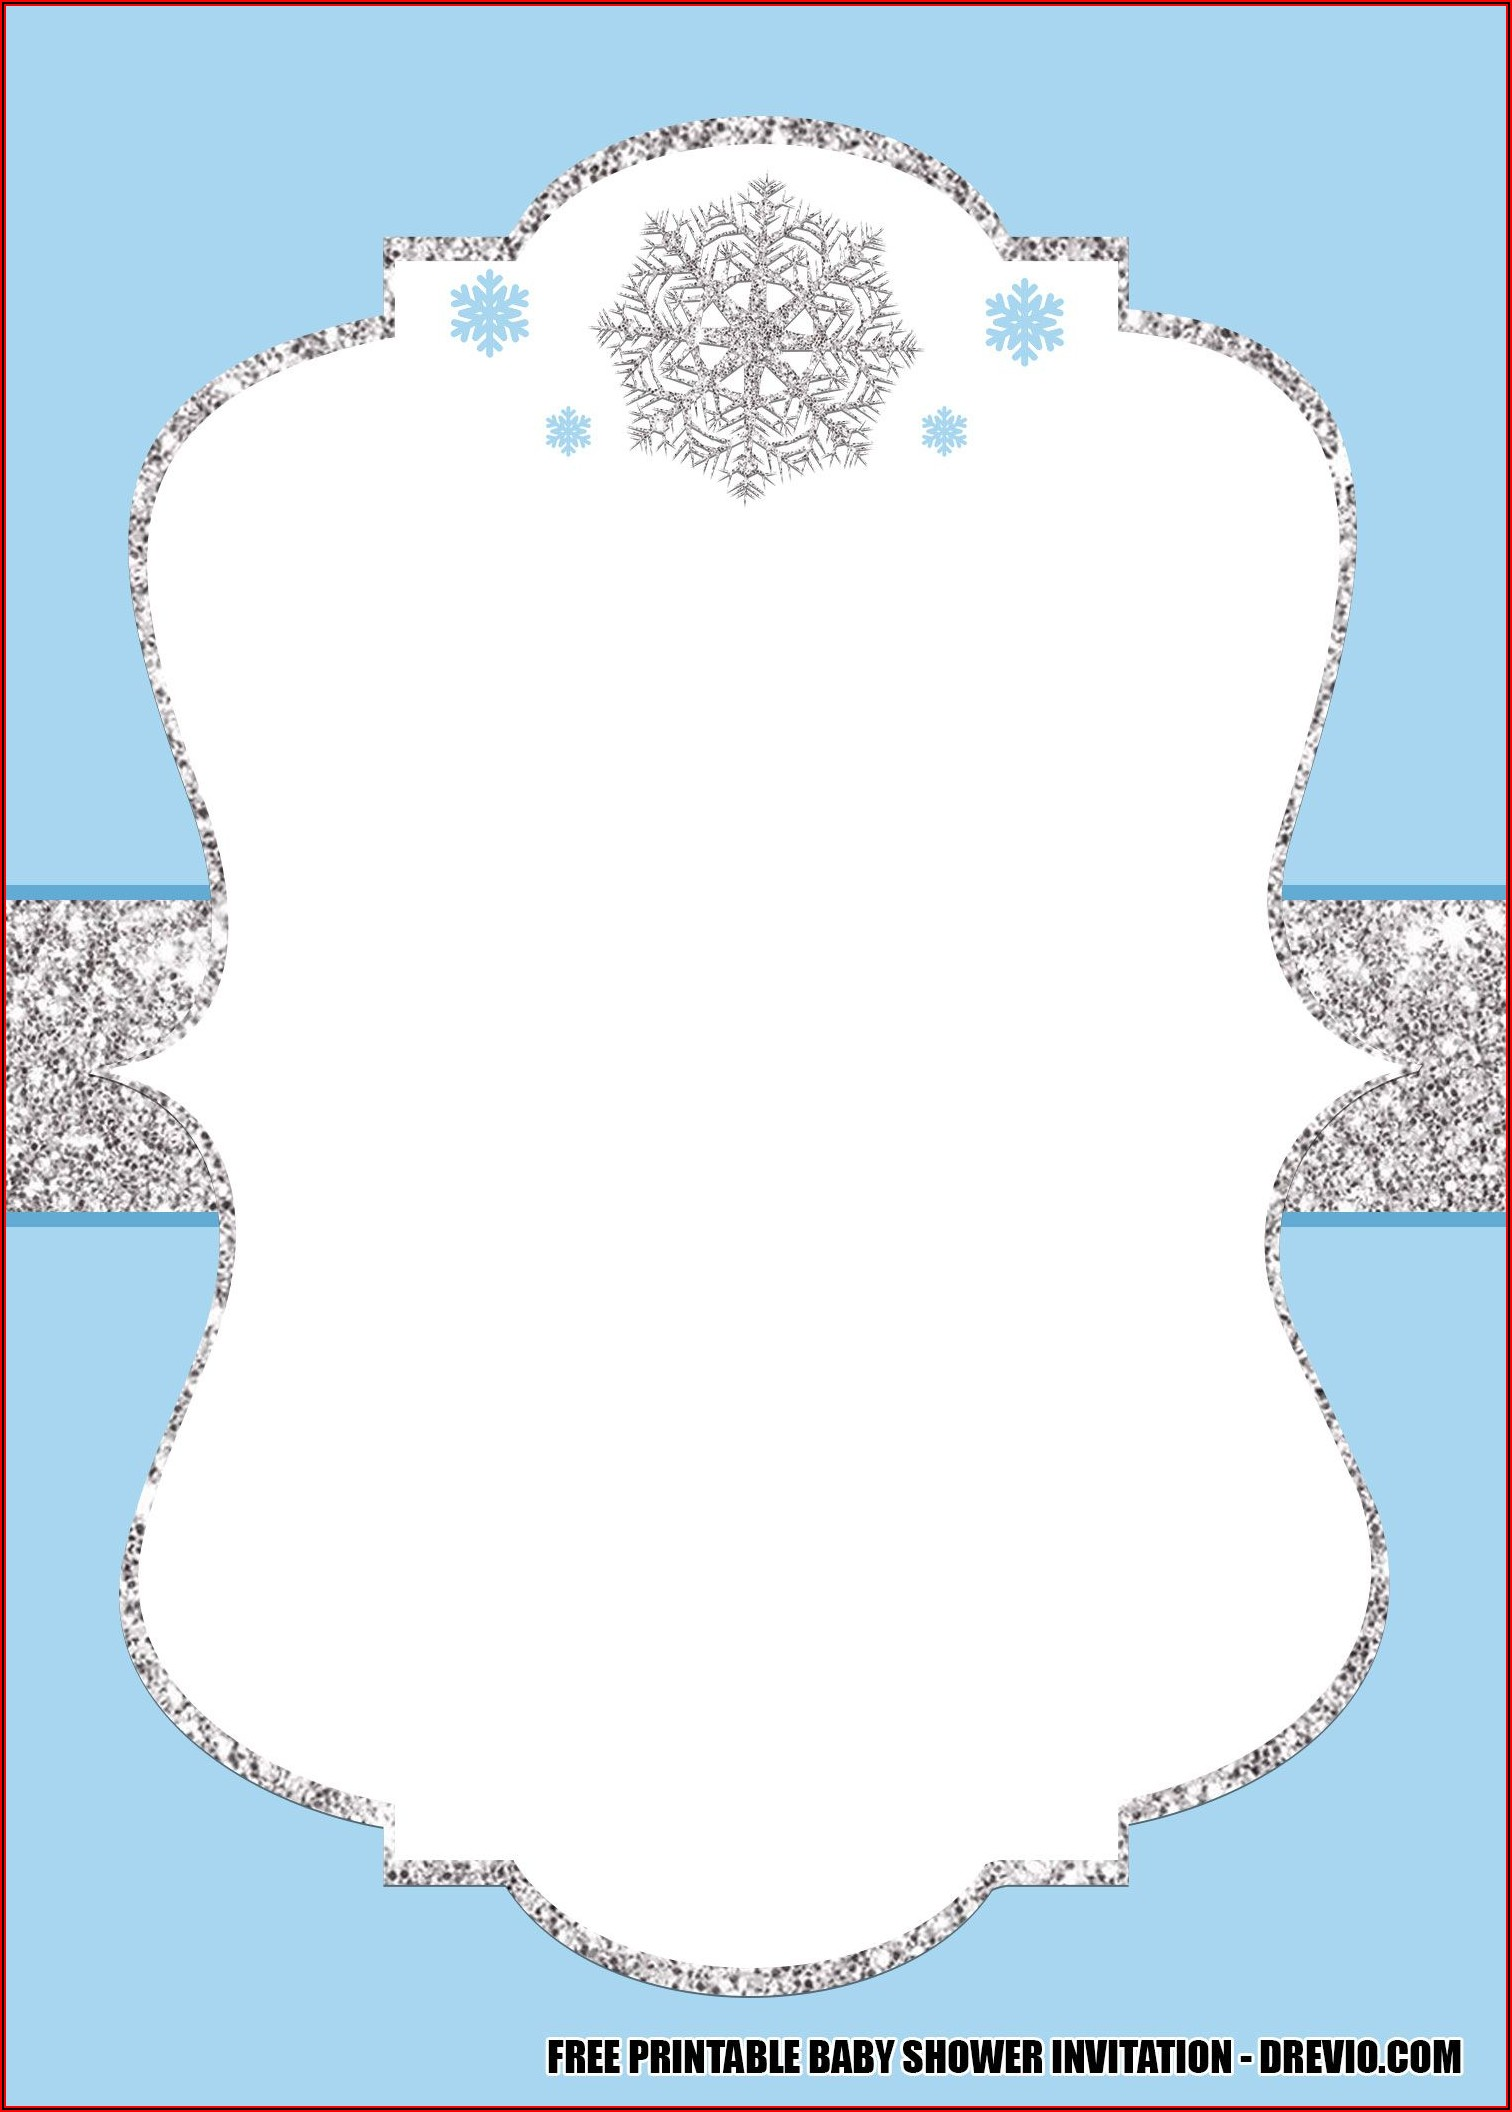 Winter Wonderland Baby Shower Invitations Templates Free